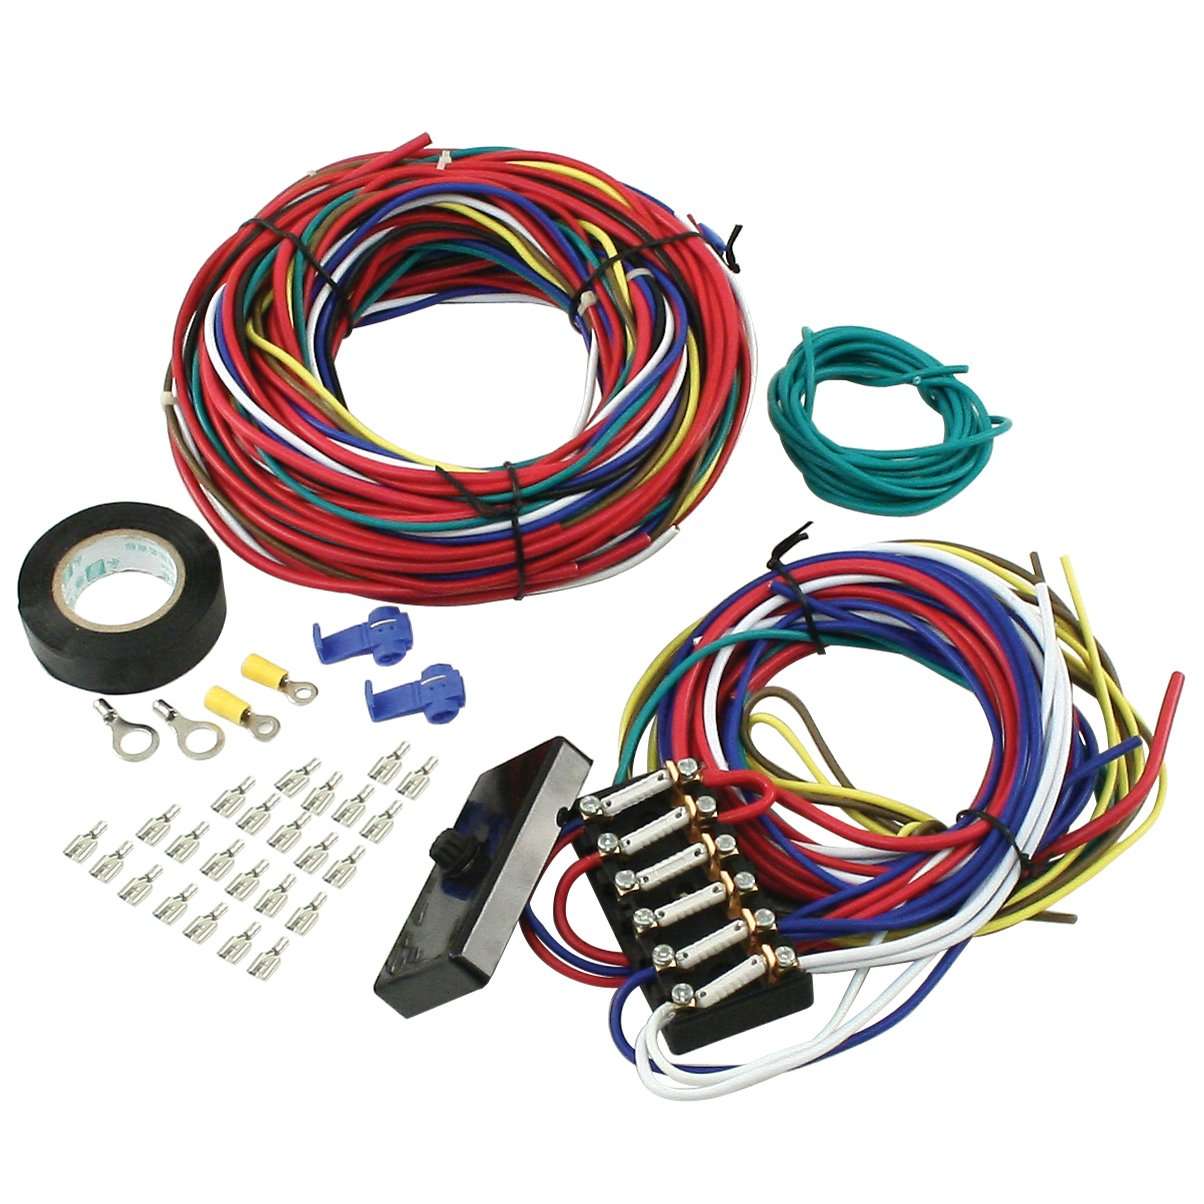 712Fyt3MSiL._SL1204_ amazon com empi 00 9466 0 wire loom kit, vw buggy, sand rail VW Wiring Harness Kits at soozxer.org